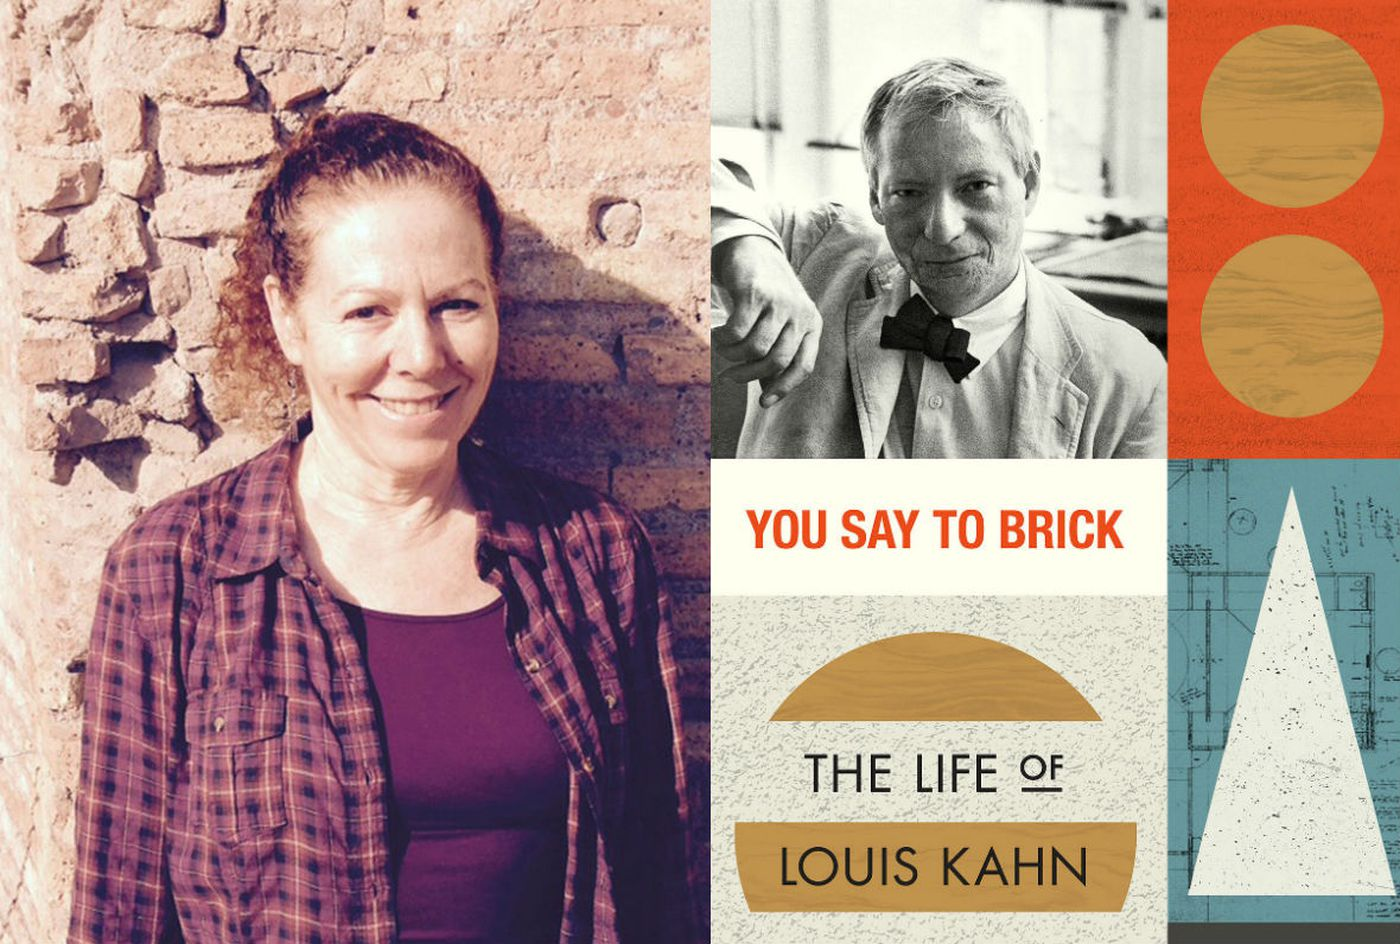 Wendy Lesser on Louis Kahn: Immigrant, architect, lover of light